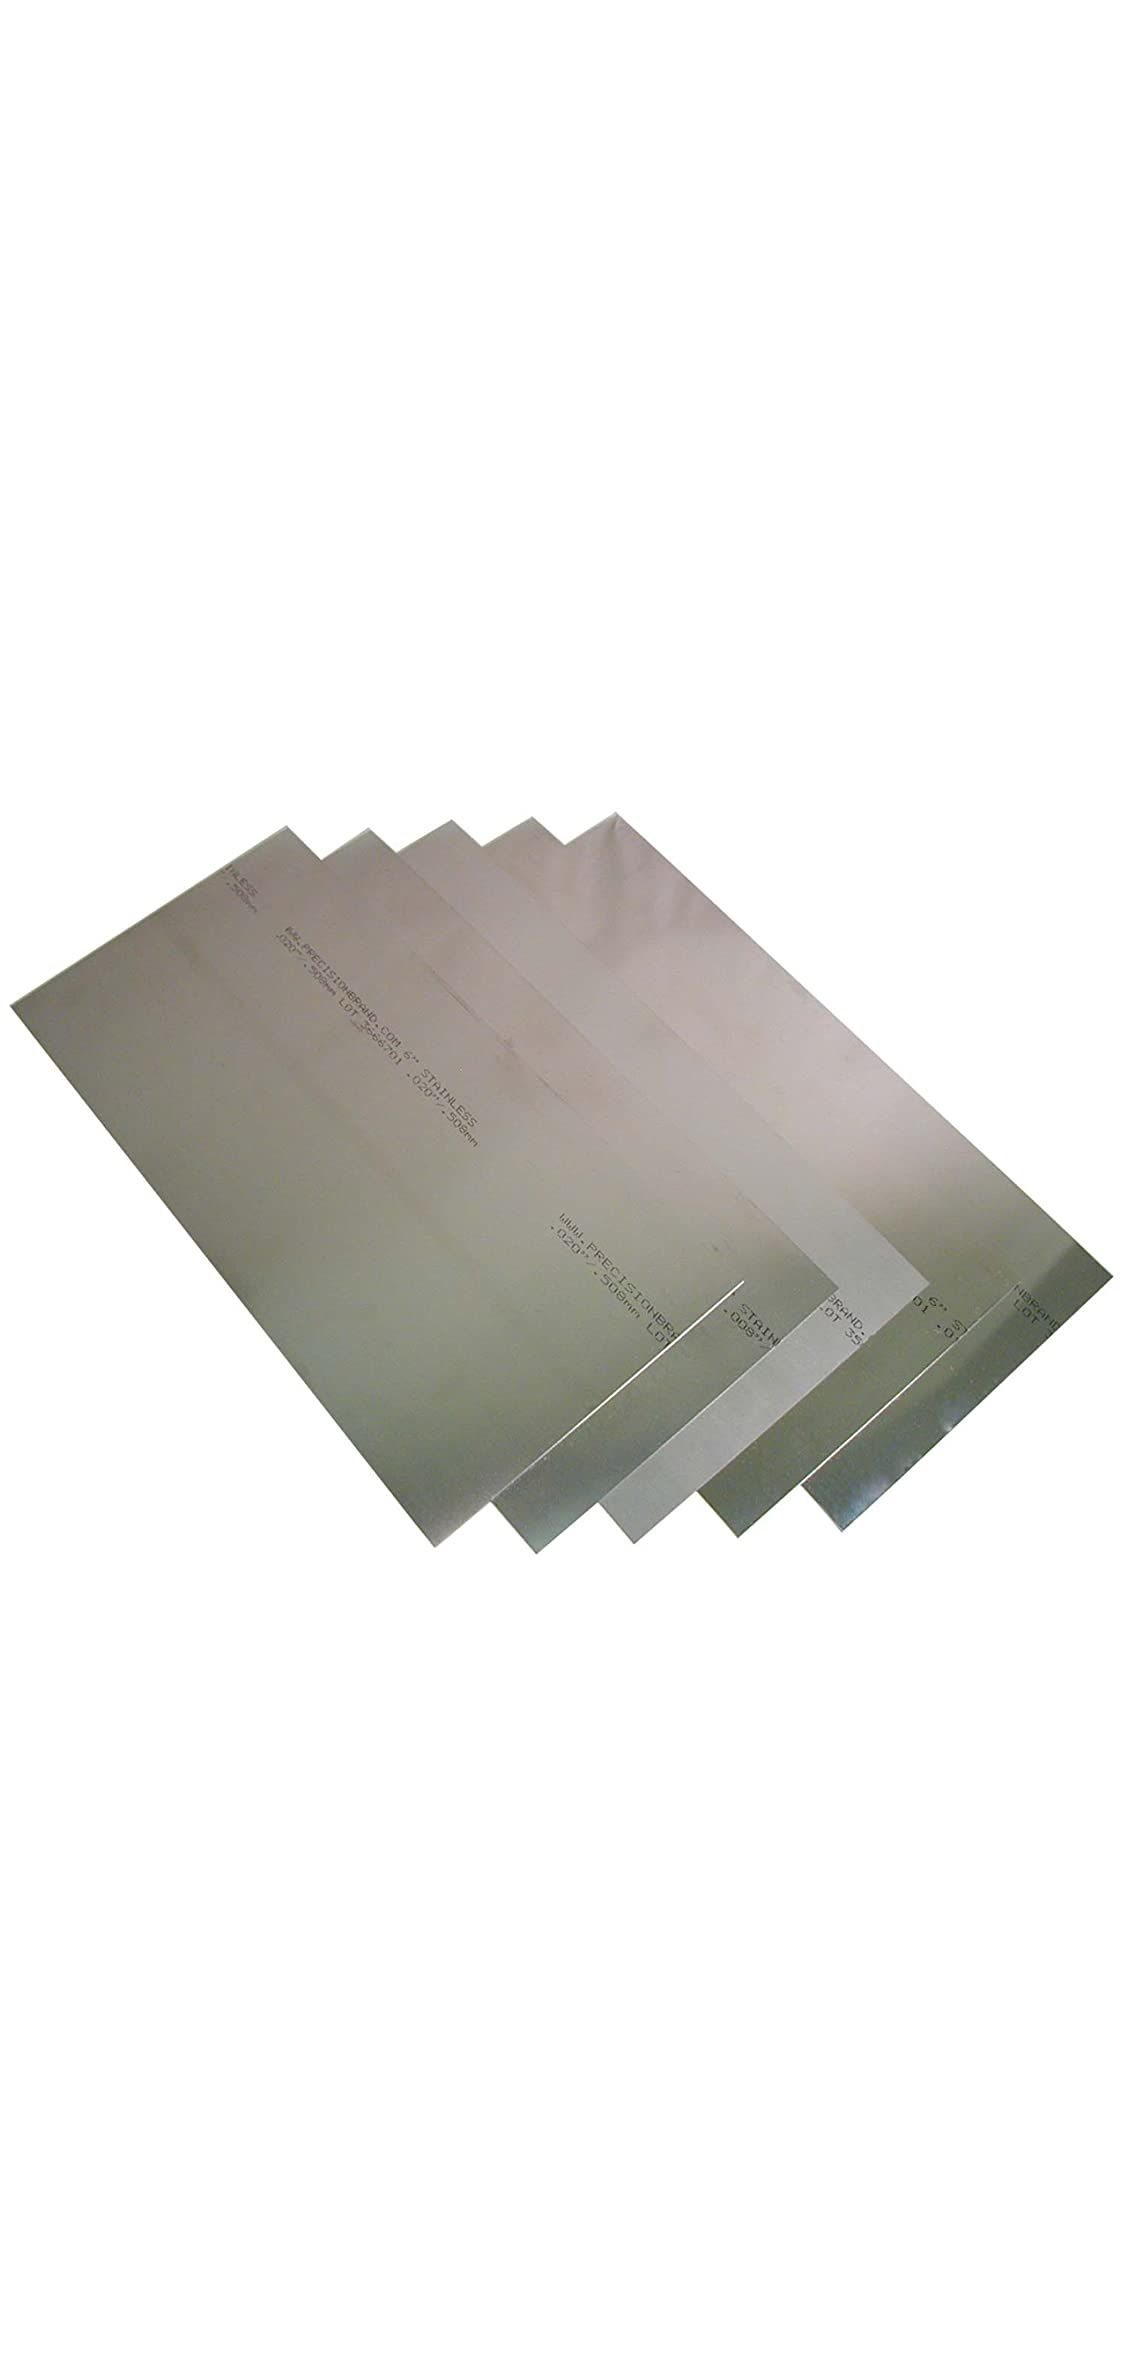 Stainless Steel Backsplash 302 Stainless Steel Sheet Unpolished Mill Stainles In 2020 Stainless Steel Backsplash Stainless Steel Contact Paper Stainless Steel Paint